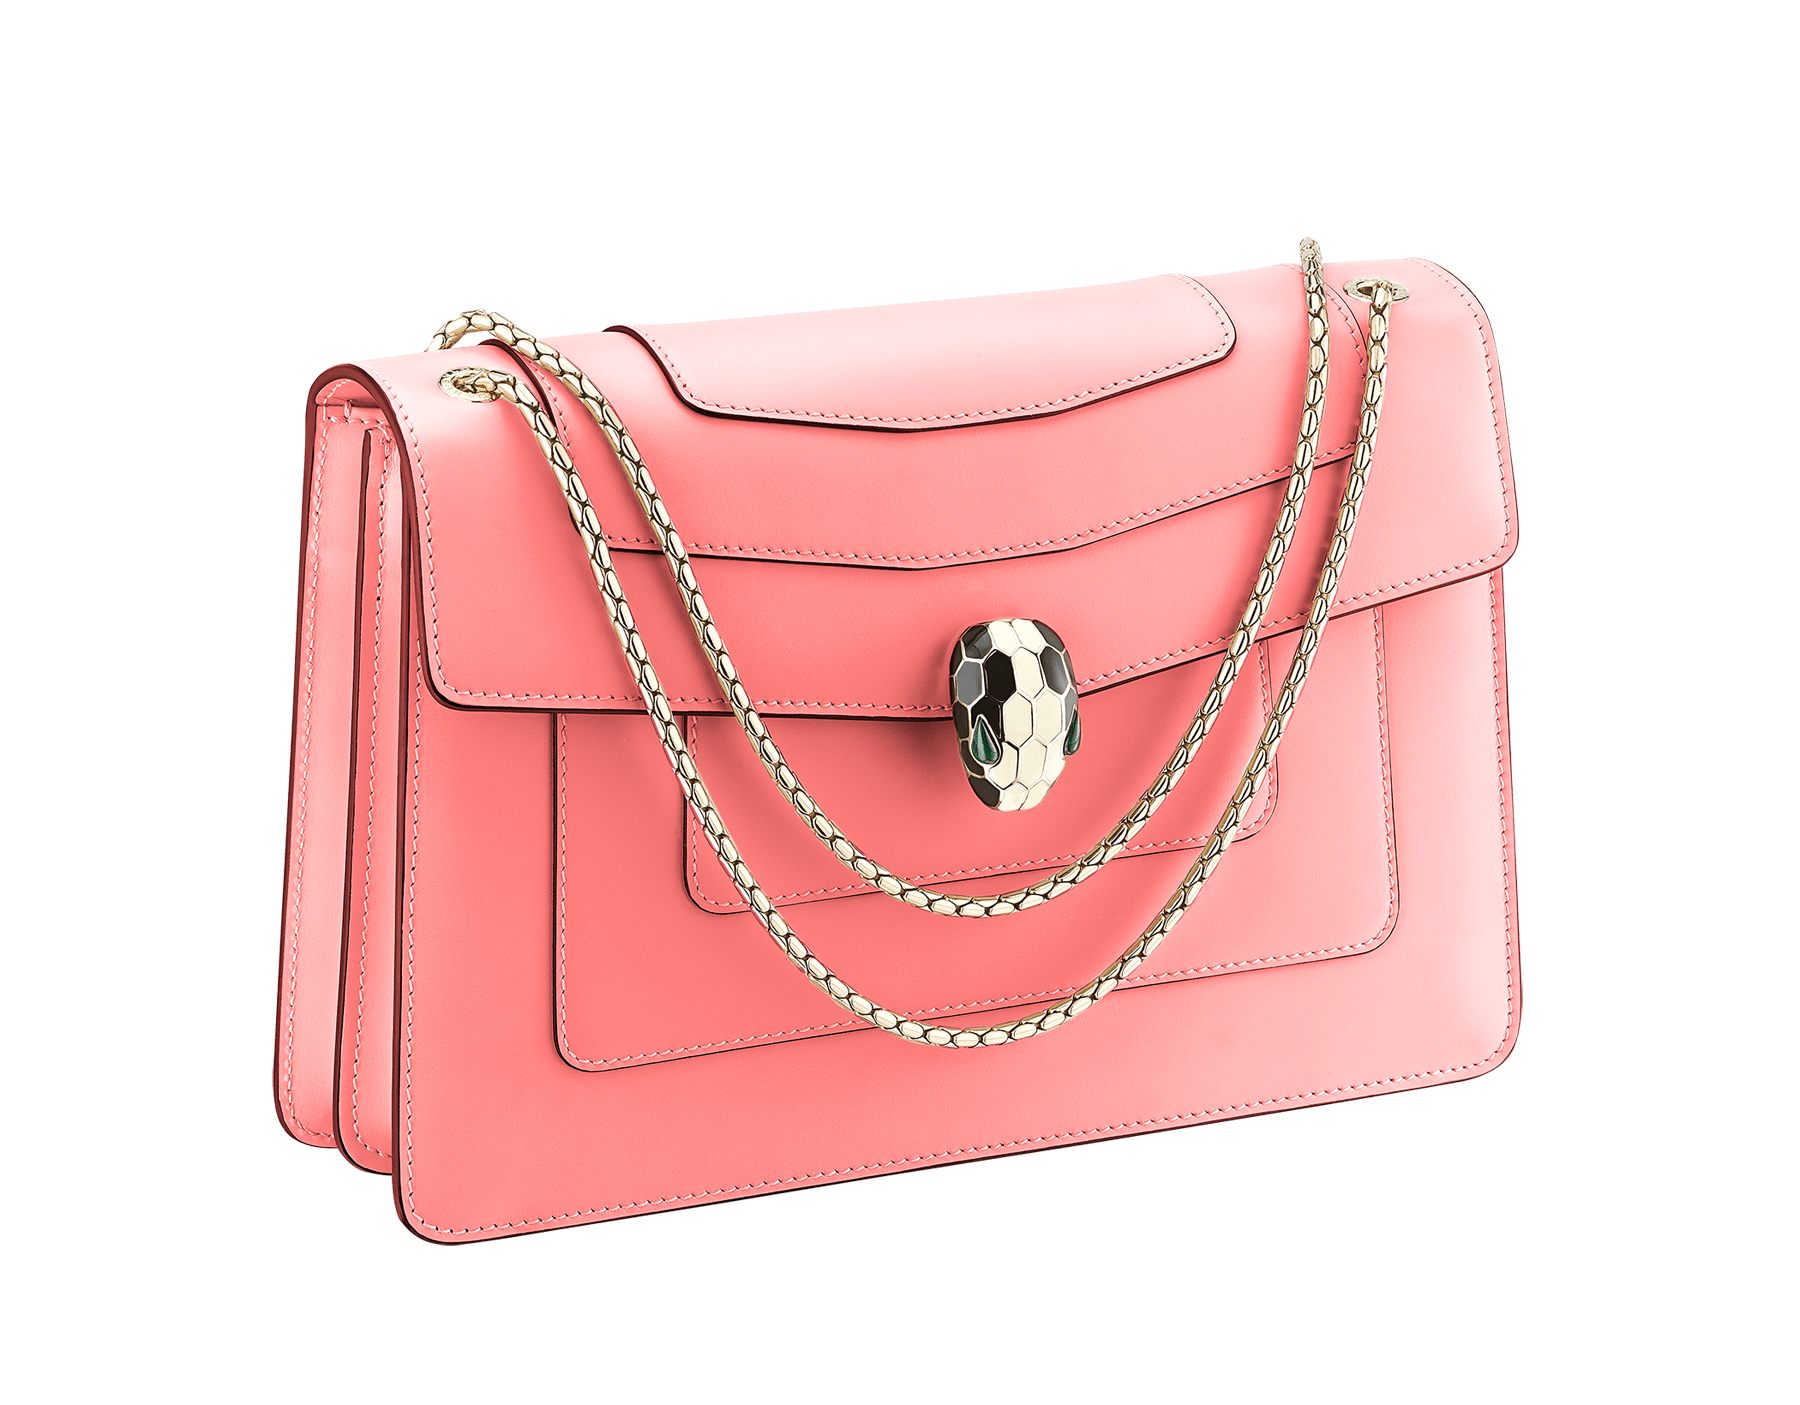 Serpenti Forever shoulder bag in silky coral calf leather. Iconic snakehead closure in light gold plated brass embellished with black and white enamel and green malachite eyes. 288704 image 2